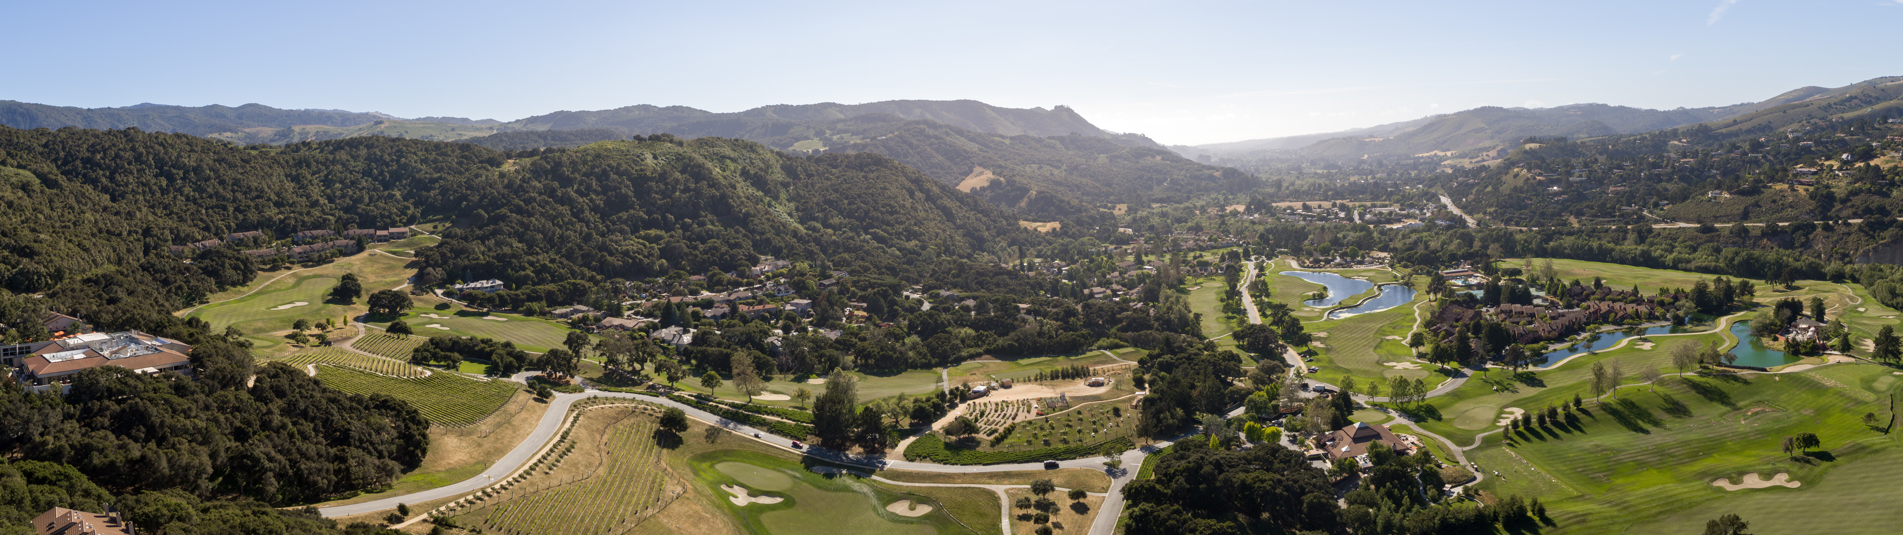 Carmel Valley Ranch_Property_Aerial_facing west_pano_LG Drone 66